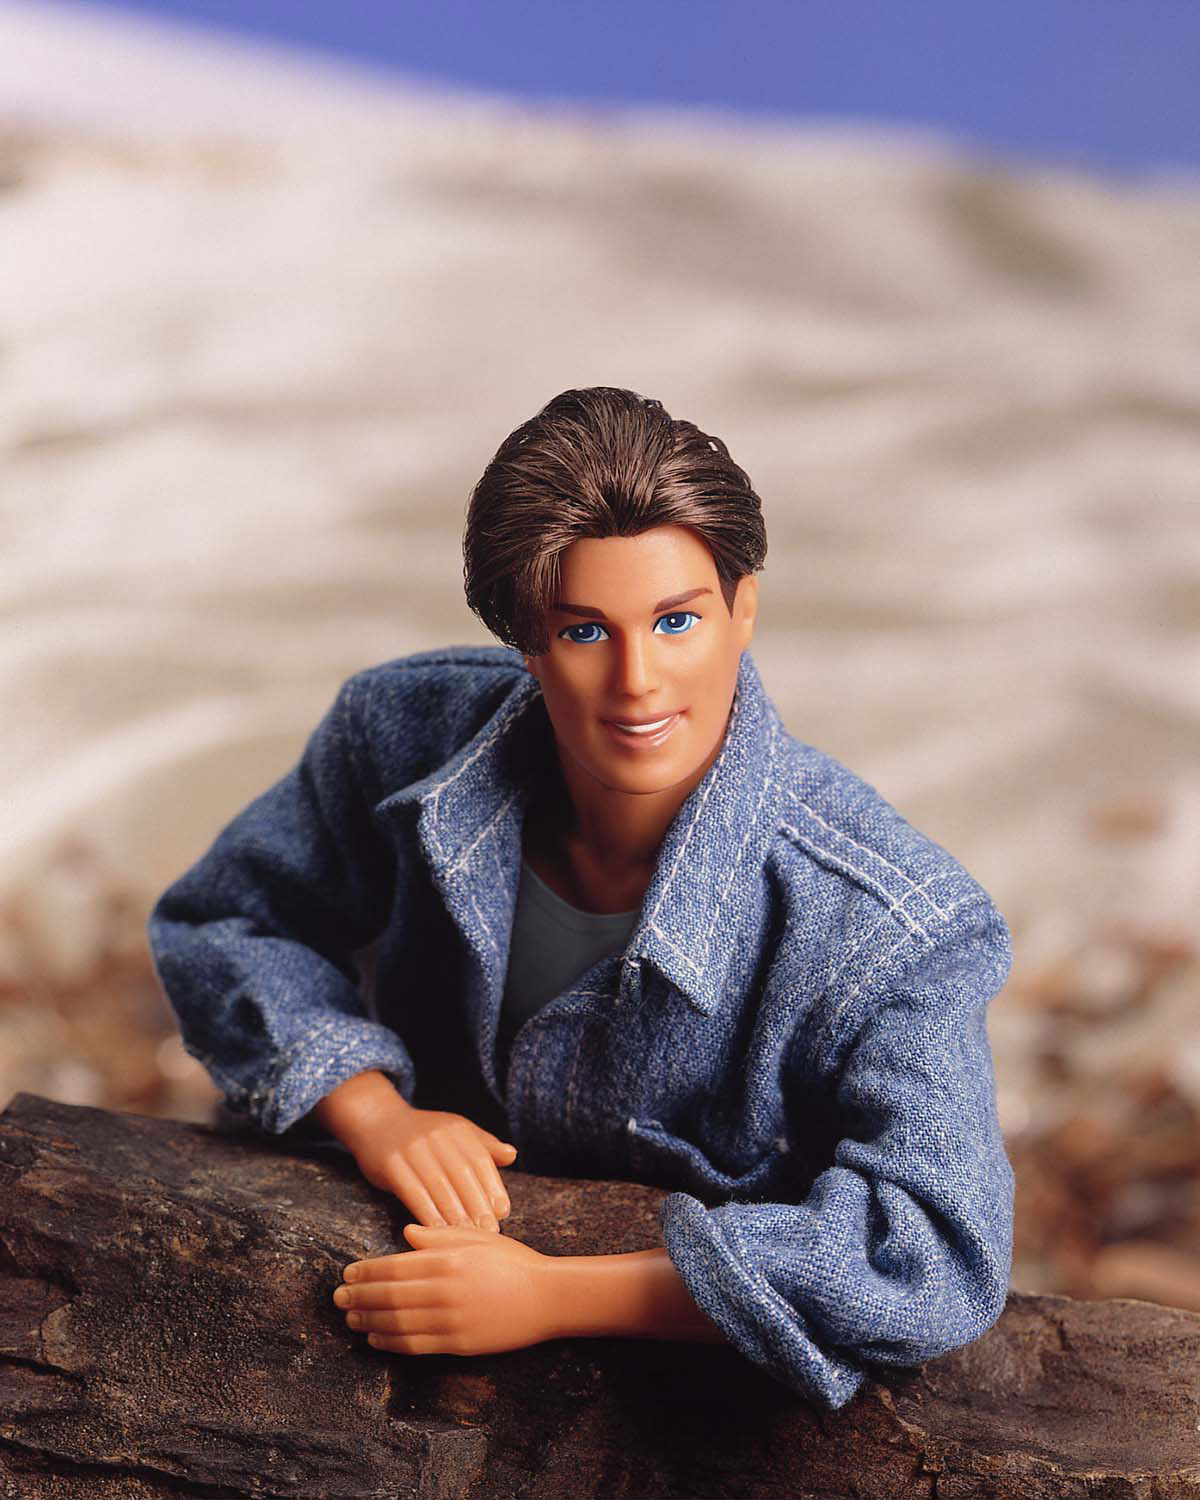 386688 04: (FILE PHOTO) A 1995 Ken doll wears a jean jacket in this portrait. On March 13, 2001, Mattel toy company celebrated the 40th anniversary of the Ken doll which was originally introduced March 13, 1961 at the American International Toy Fair. Originating with his crew cut look and evolving through the funky disco styles of the ''70s and ''80s, to the trendy styles of the ''90s, Ken has been a worldwide pop culture favorite for every era and for several generations. (Photo courtesy of Mattel/Newsmakers)